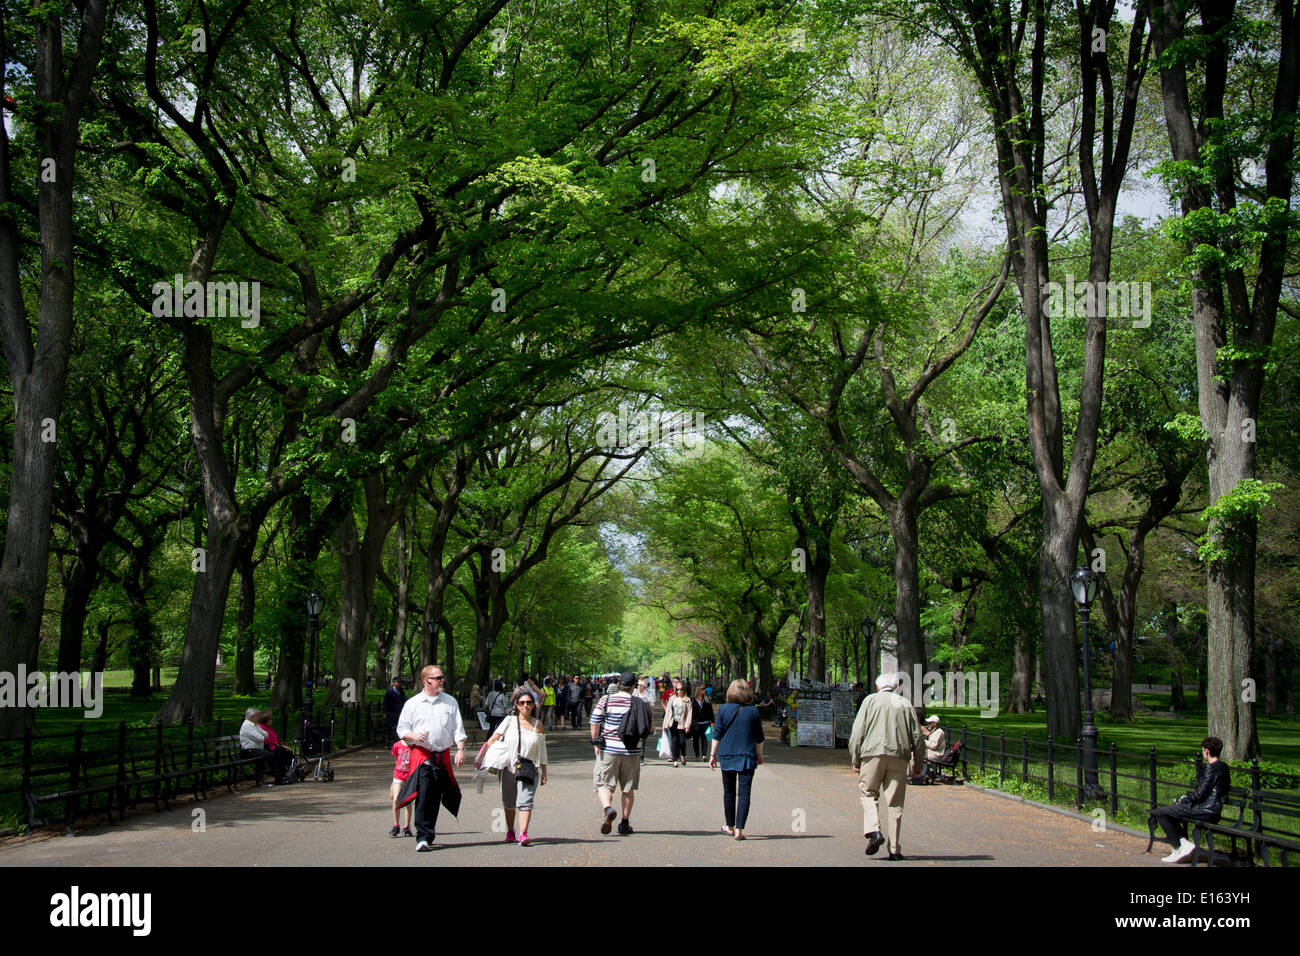 The Literary Walk section of The Mall in New York City's Central Park is a walkway lined with towering American Stock Photo